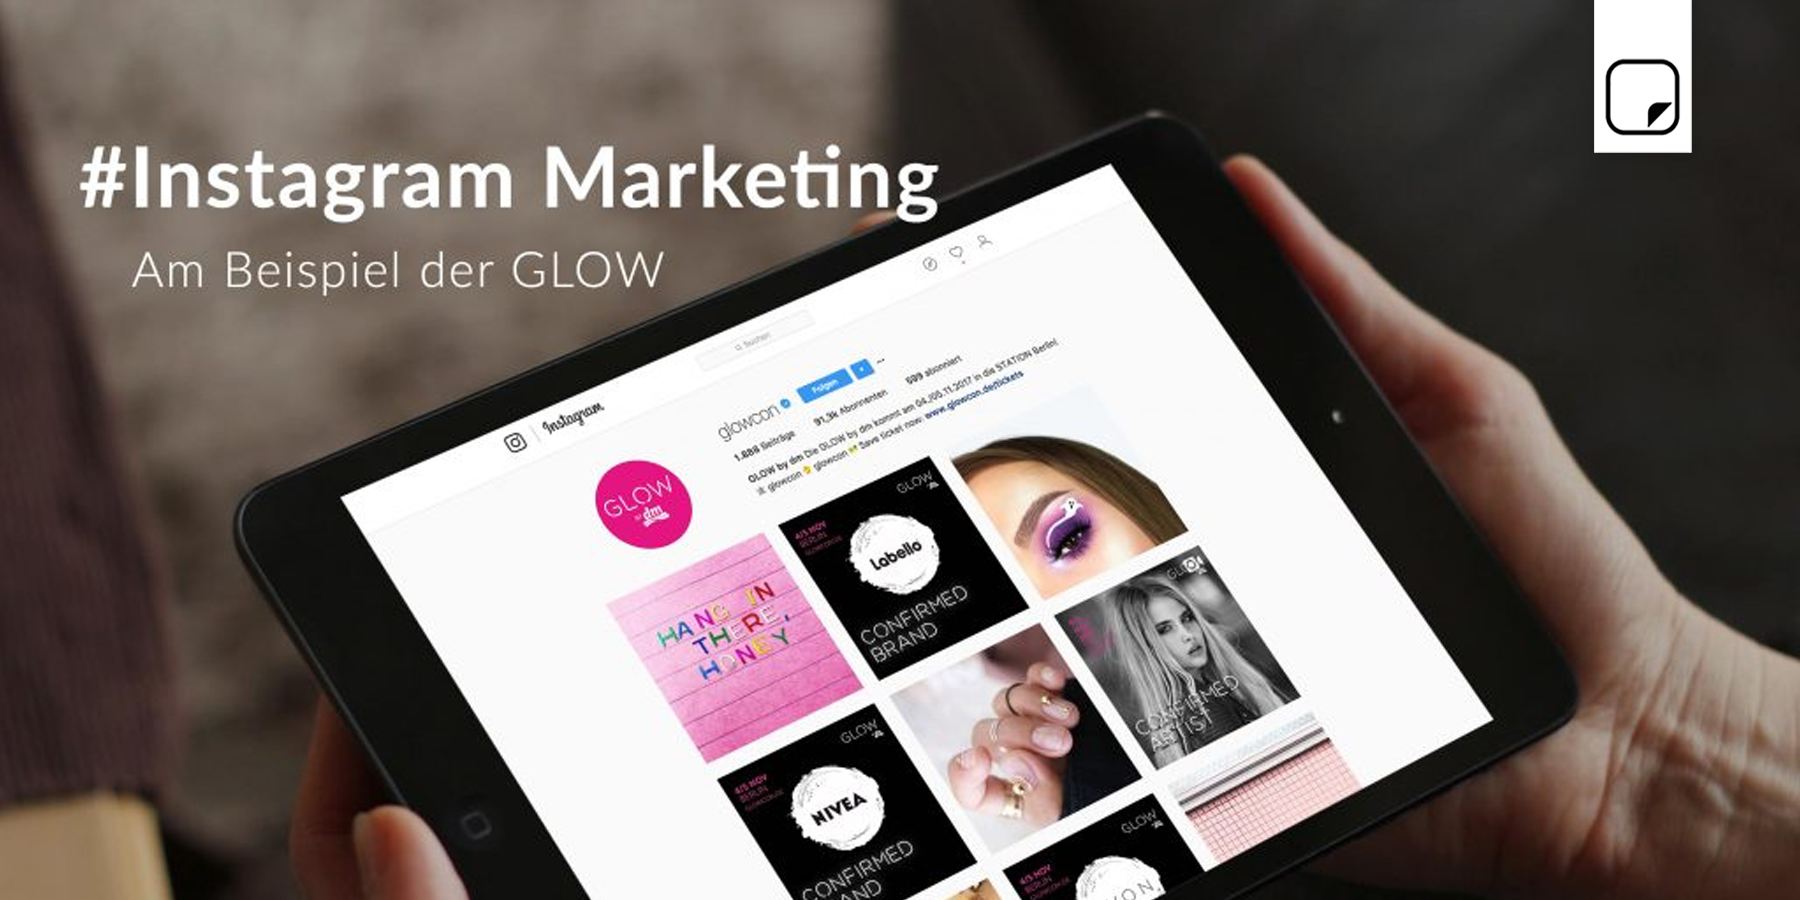 #Instagram Marketing am Beispiel der GLOW